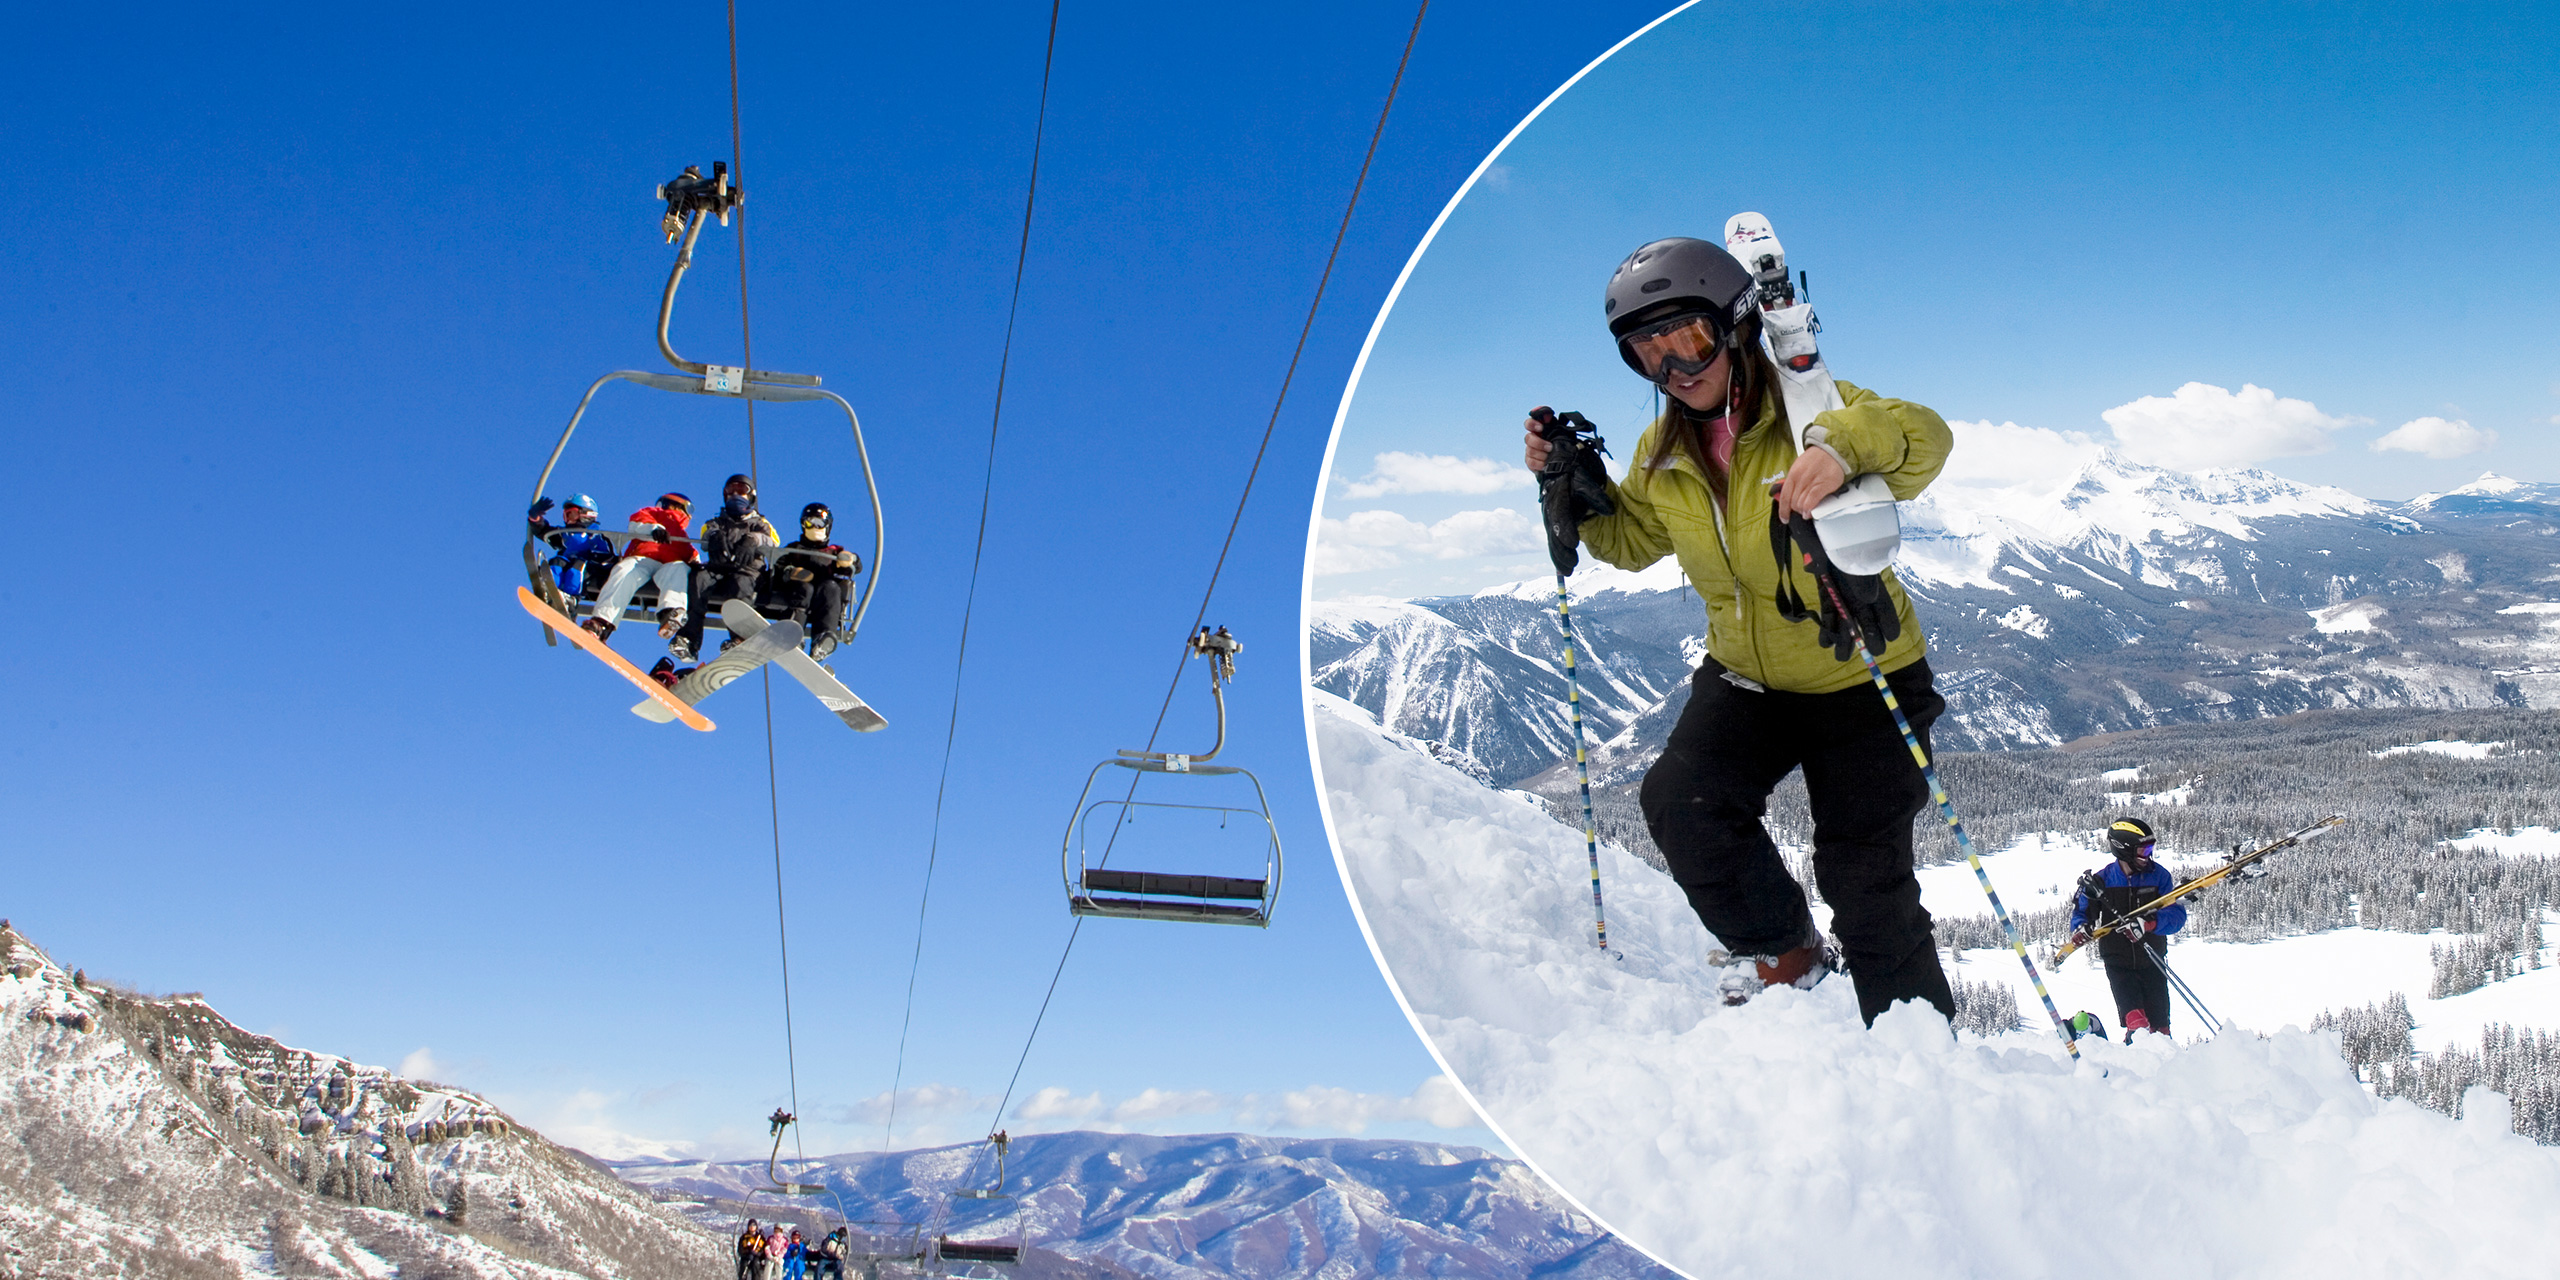 7 Best Family Ski Resorts in Colorado  Family Vacation Critic